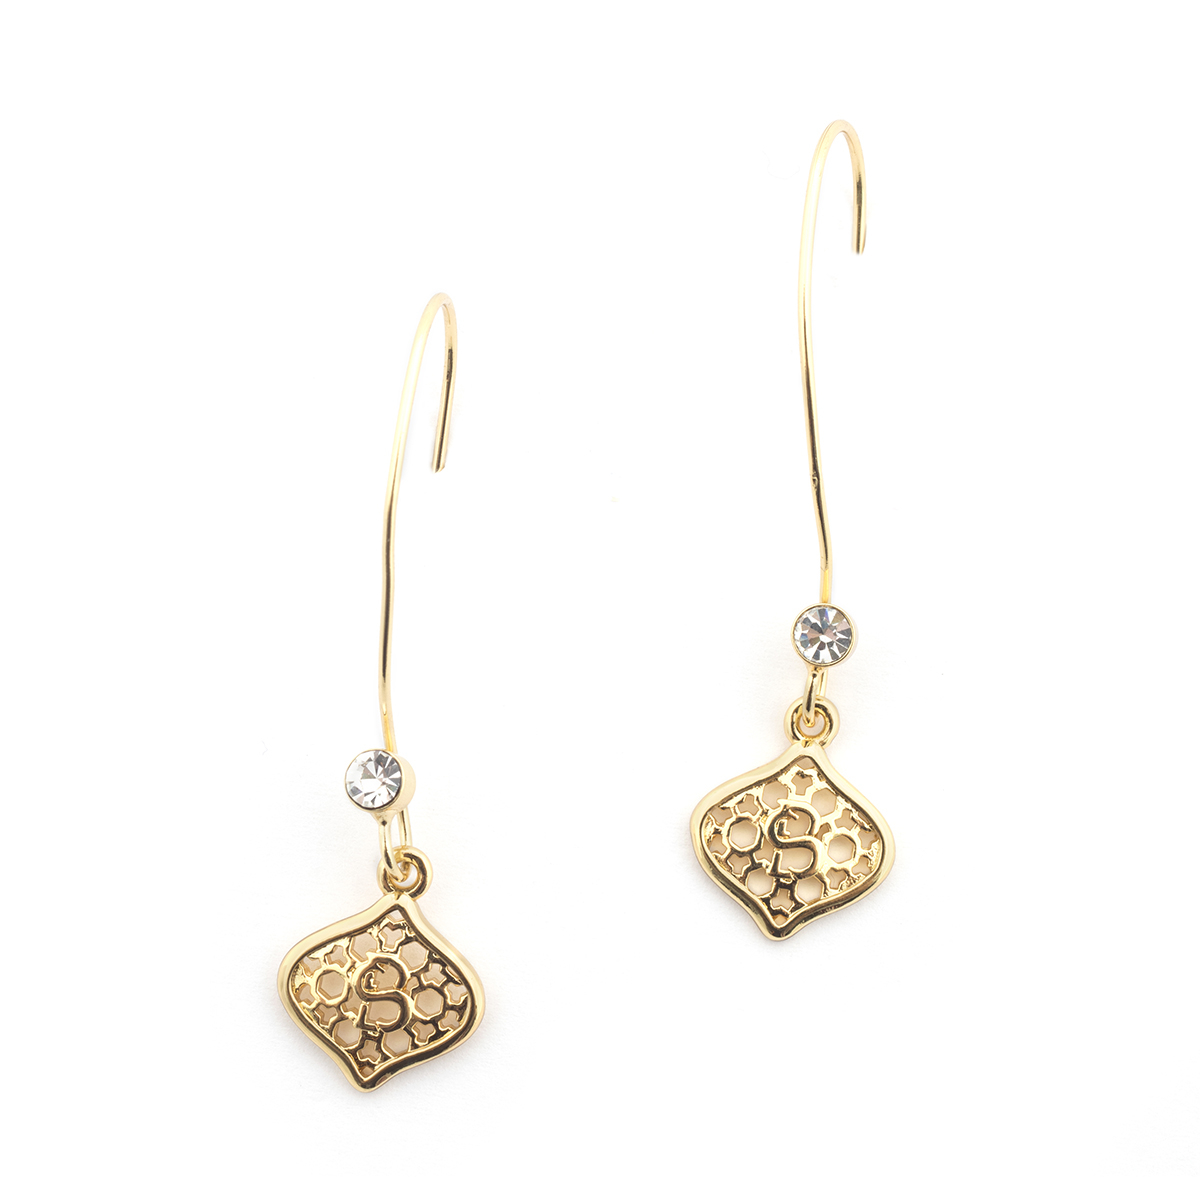 Mini Filigree Morocco Earrings - Gold